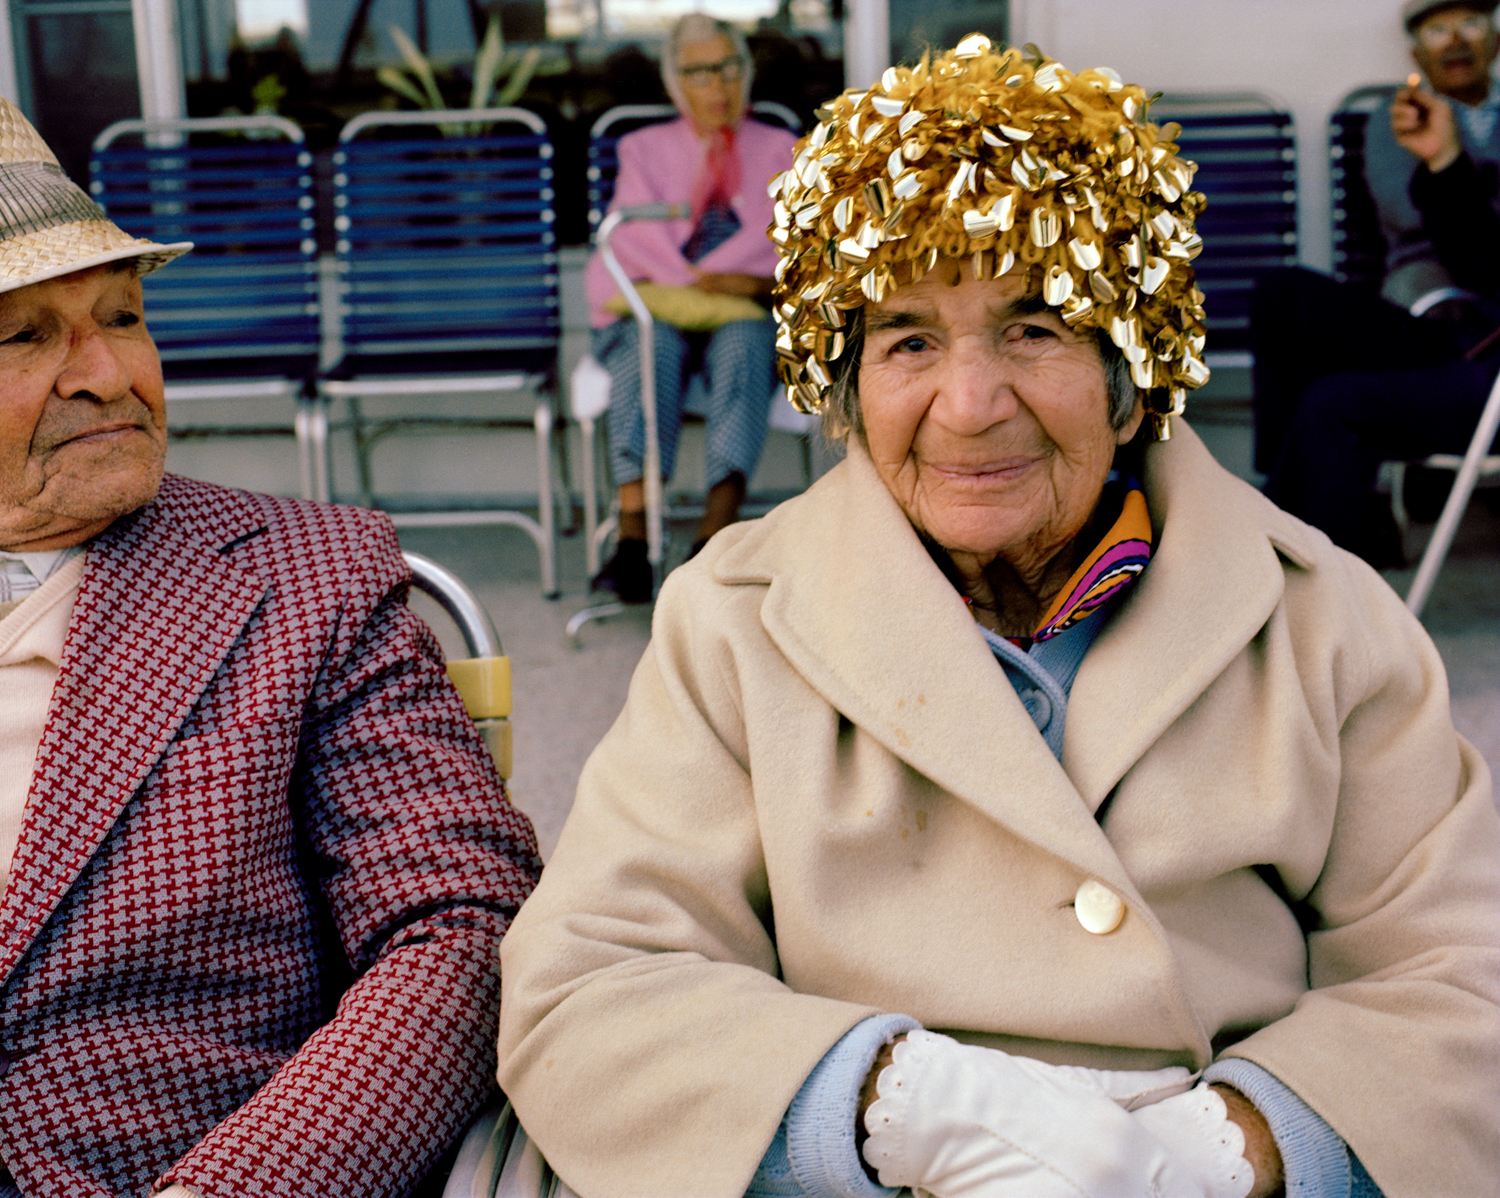 Untitled (Woman with Gold Hat) Miami - South Beach 1982-85